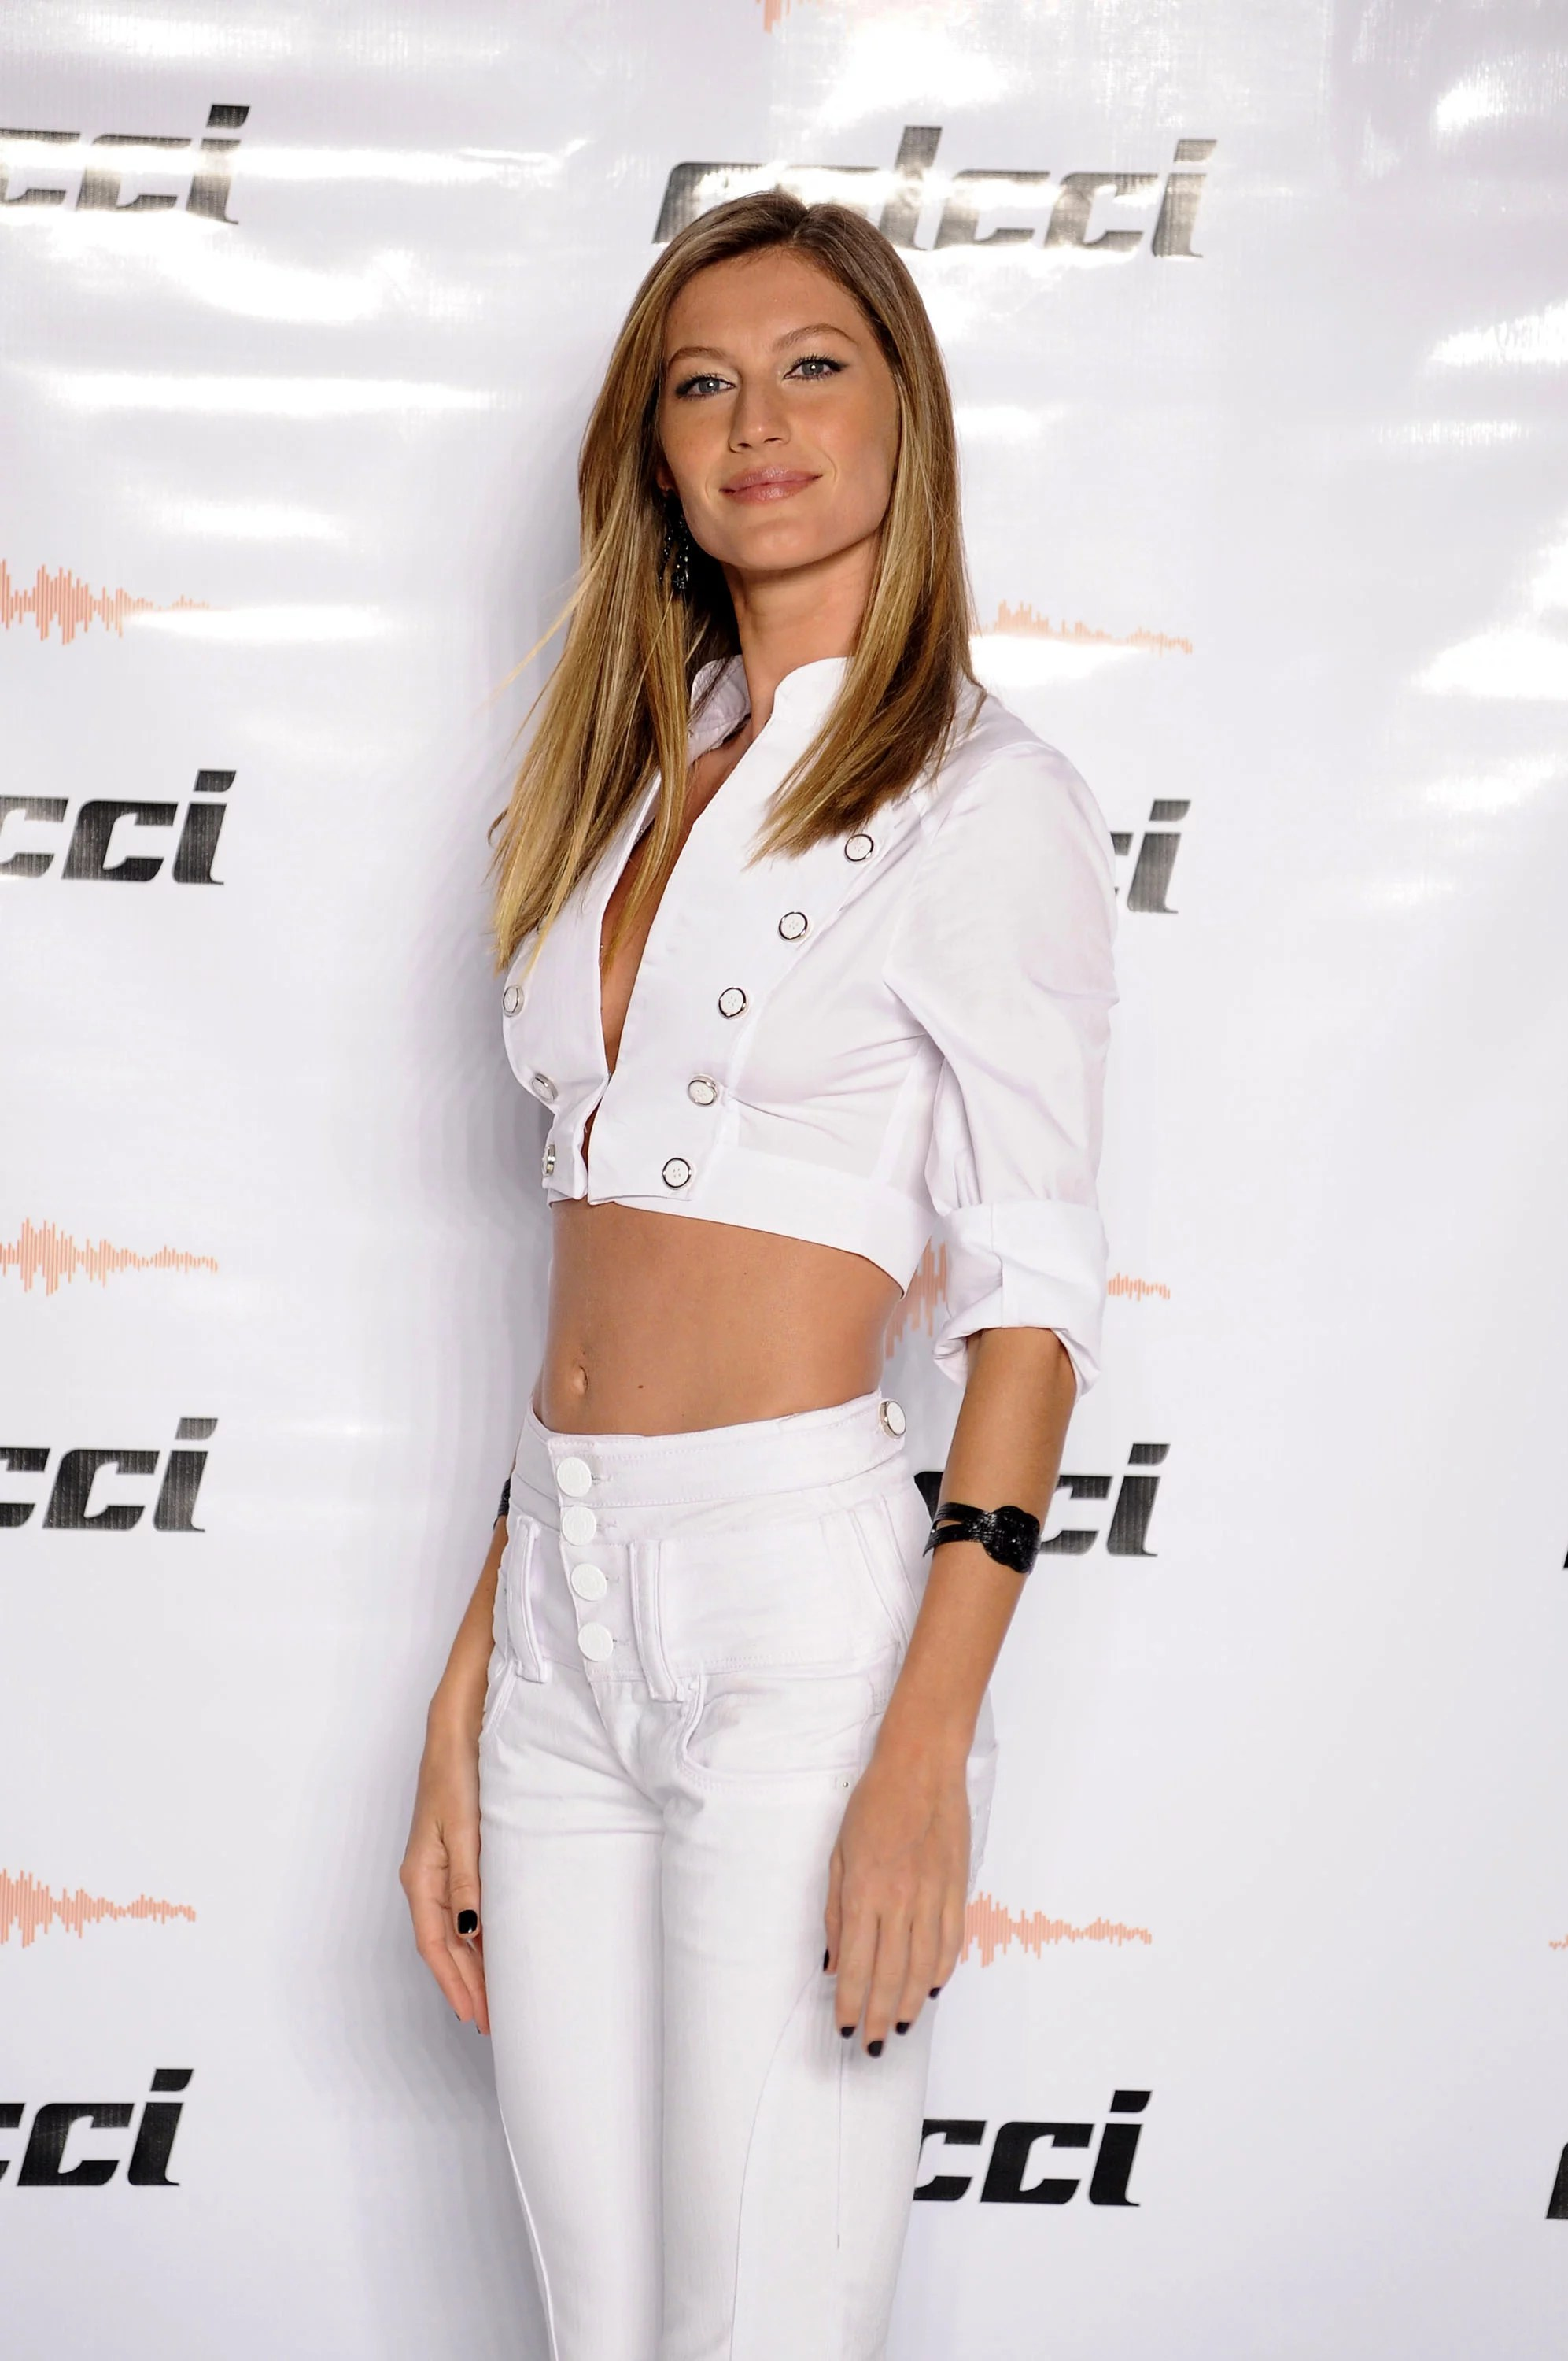 Photos of Newly Engaged Gisele Bundchen Modeling on the Runway for Colcci During Sao Paulo